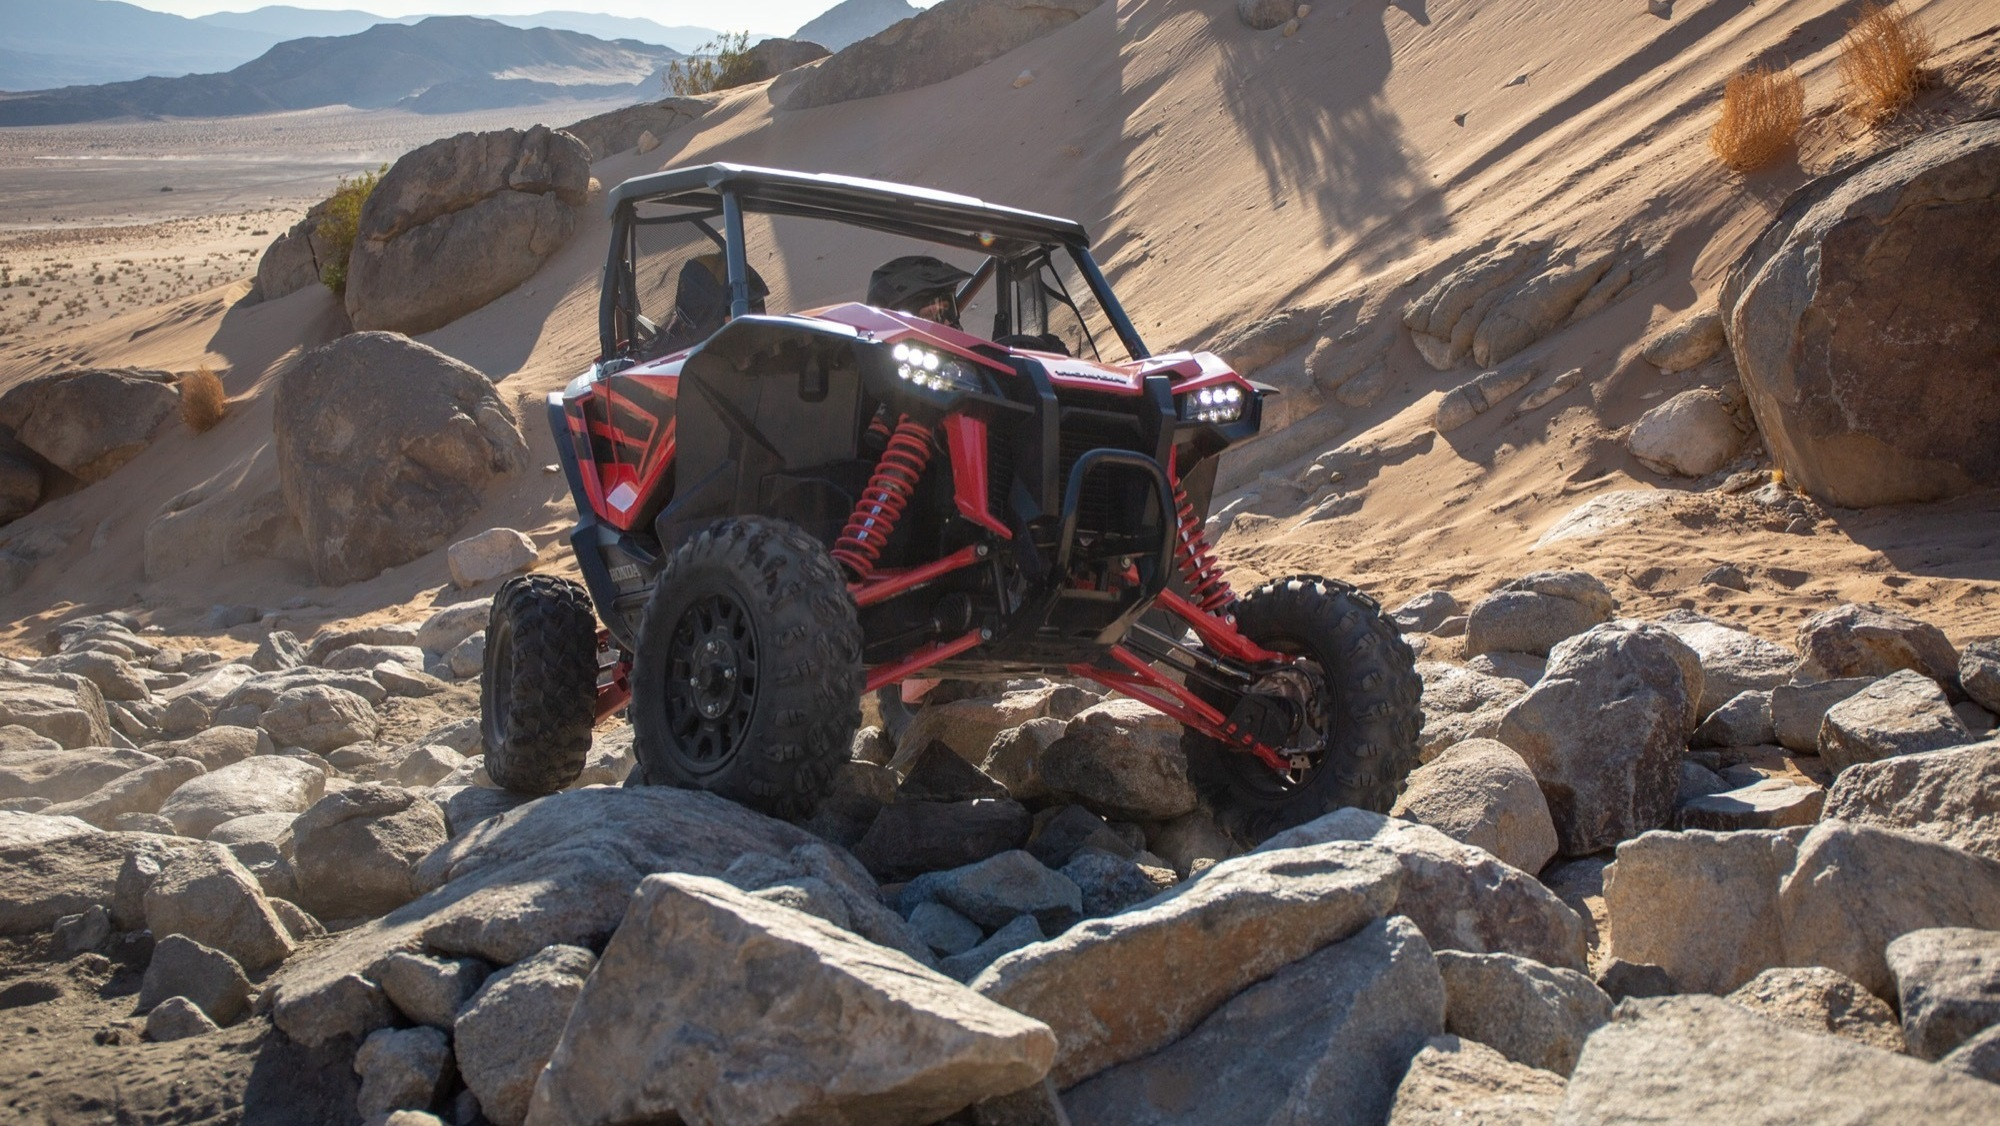 2019 Honda Talon 1000X and R side-by-side ATV review, specs